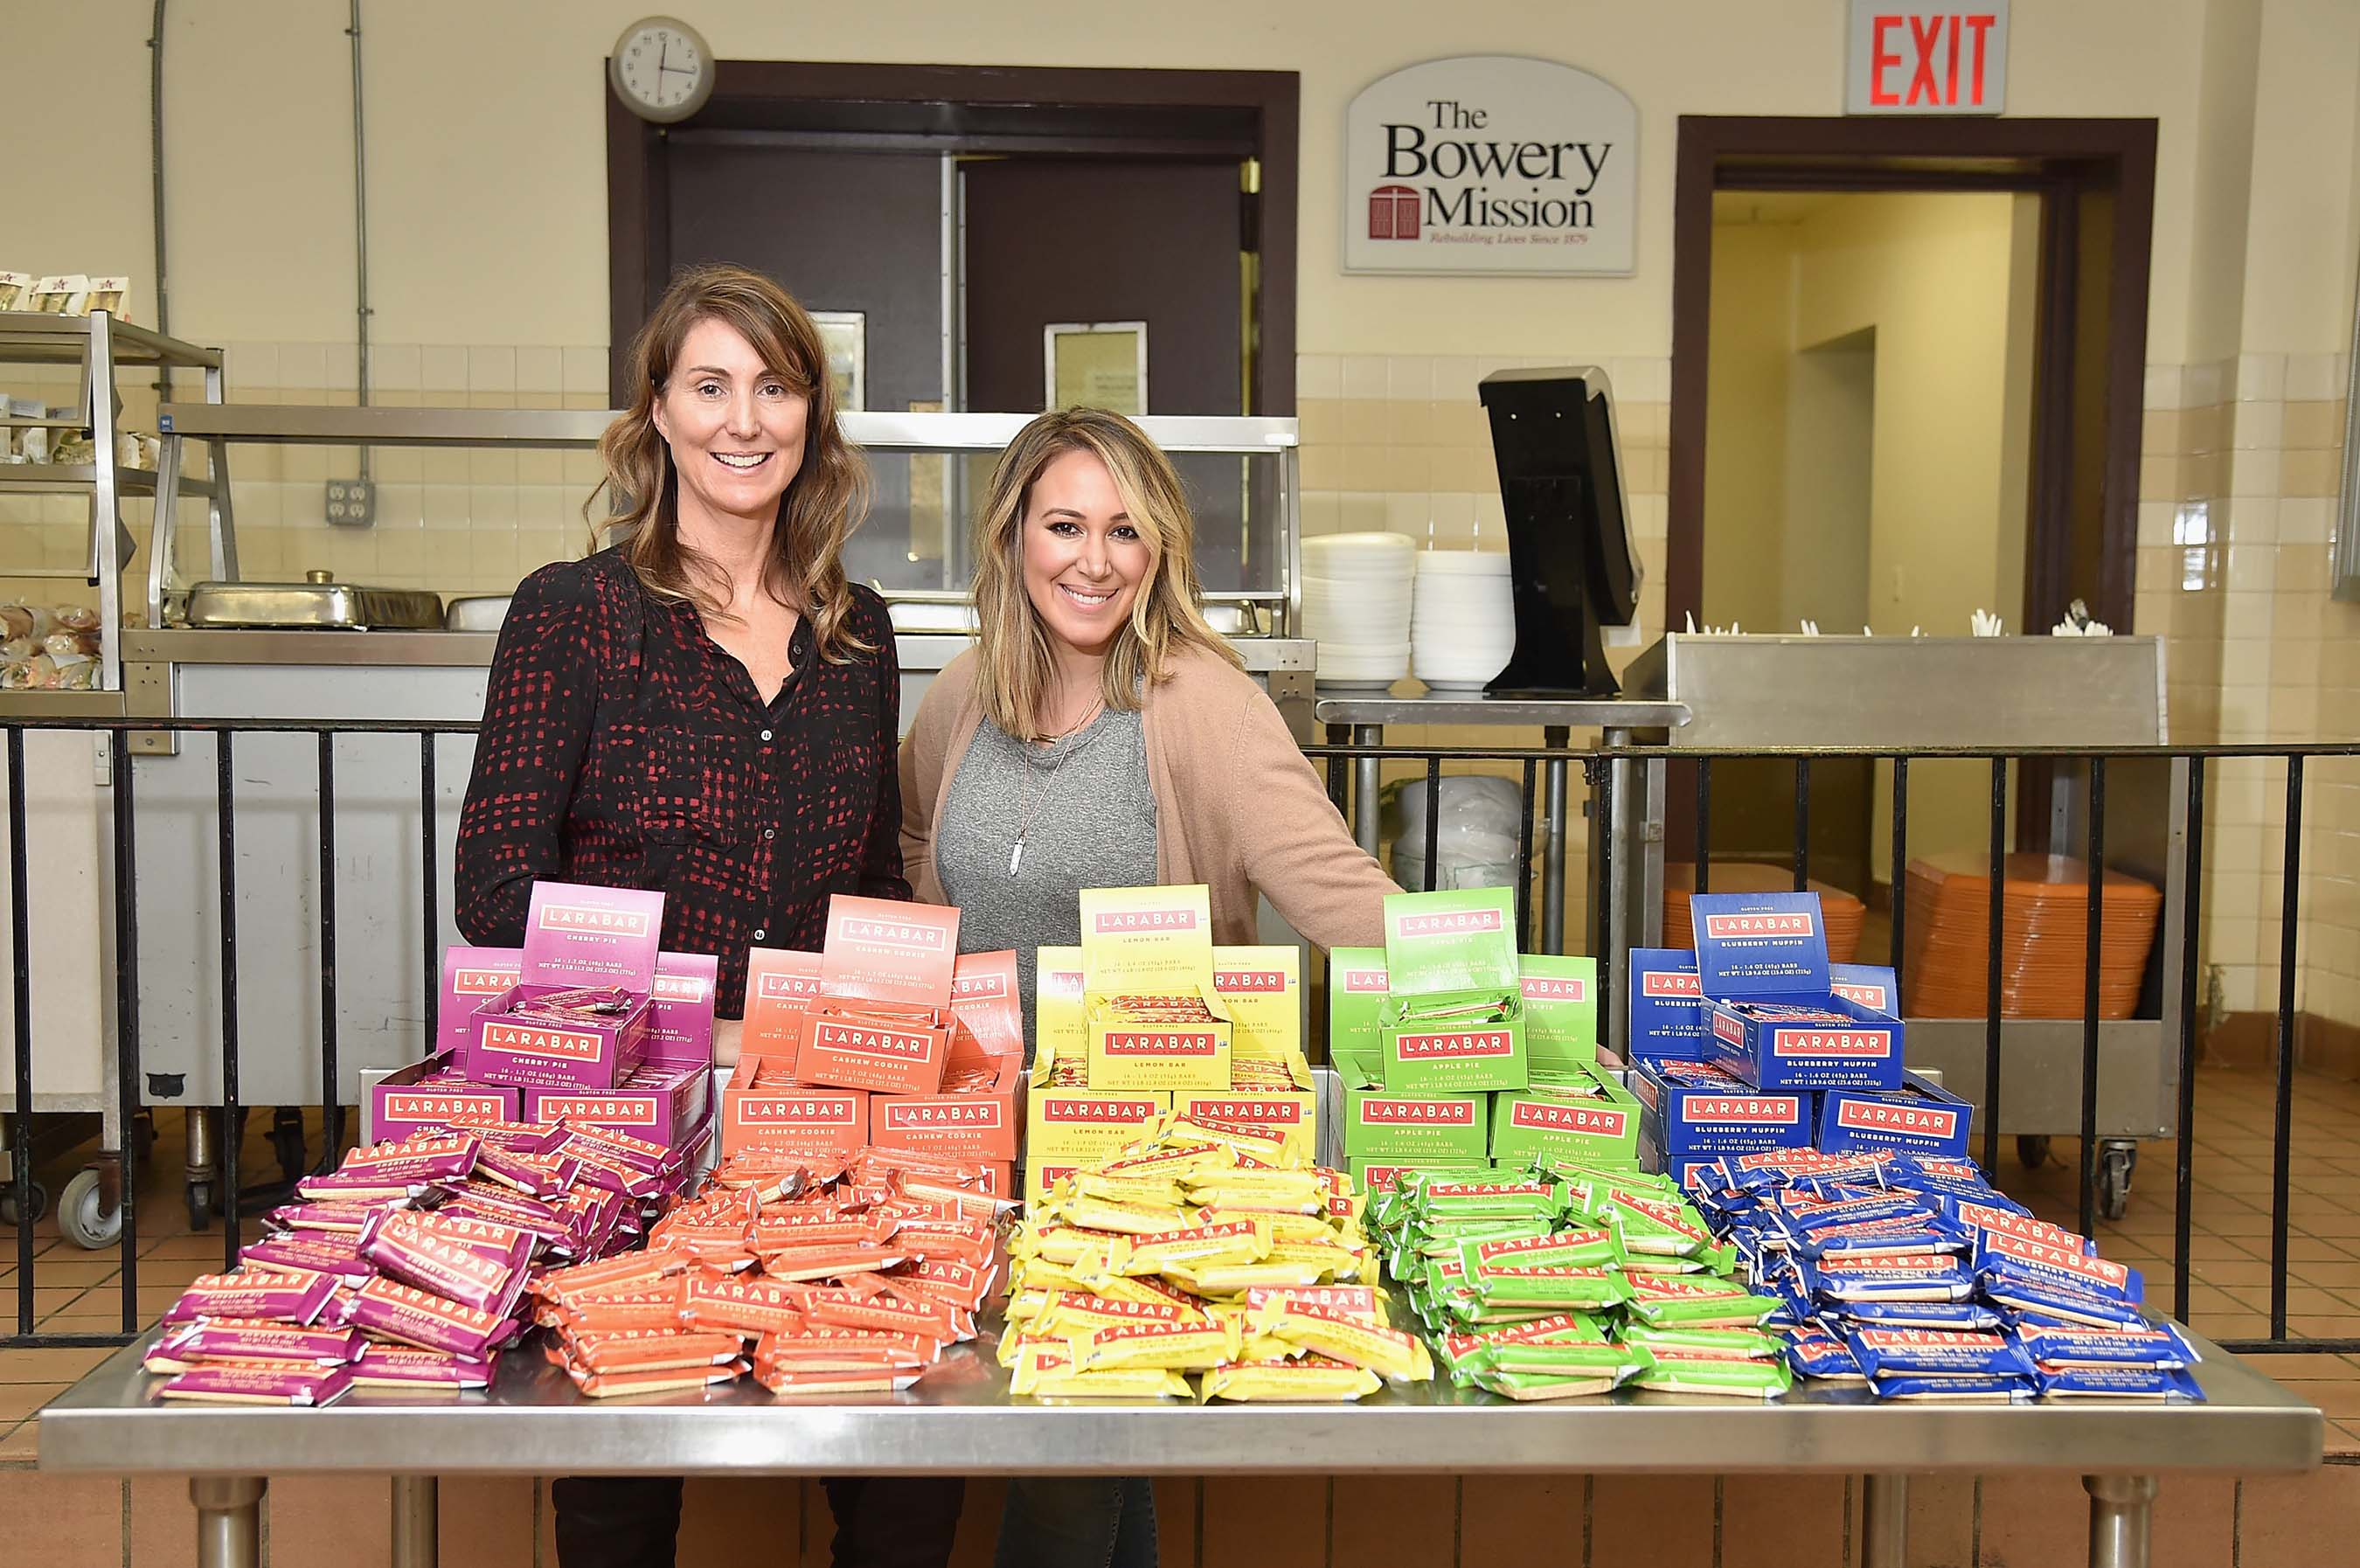 Larabar founder, Lara Merriken (L) and actress Haylie Duff share real food with The Bowery Mission beneficiaries in New York City on January 26, 2016 (Photo by Michael Loccisano/Getty Images for Larabar)